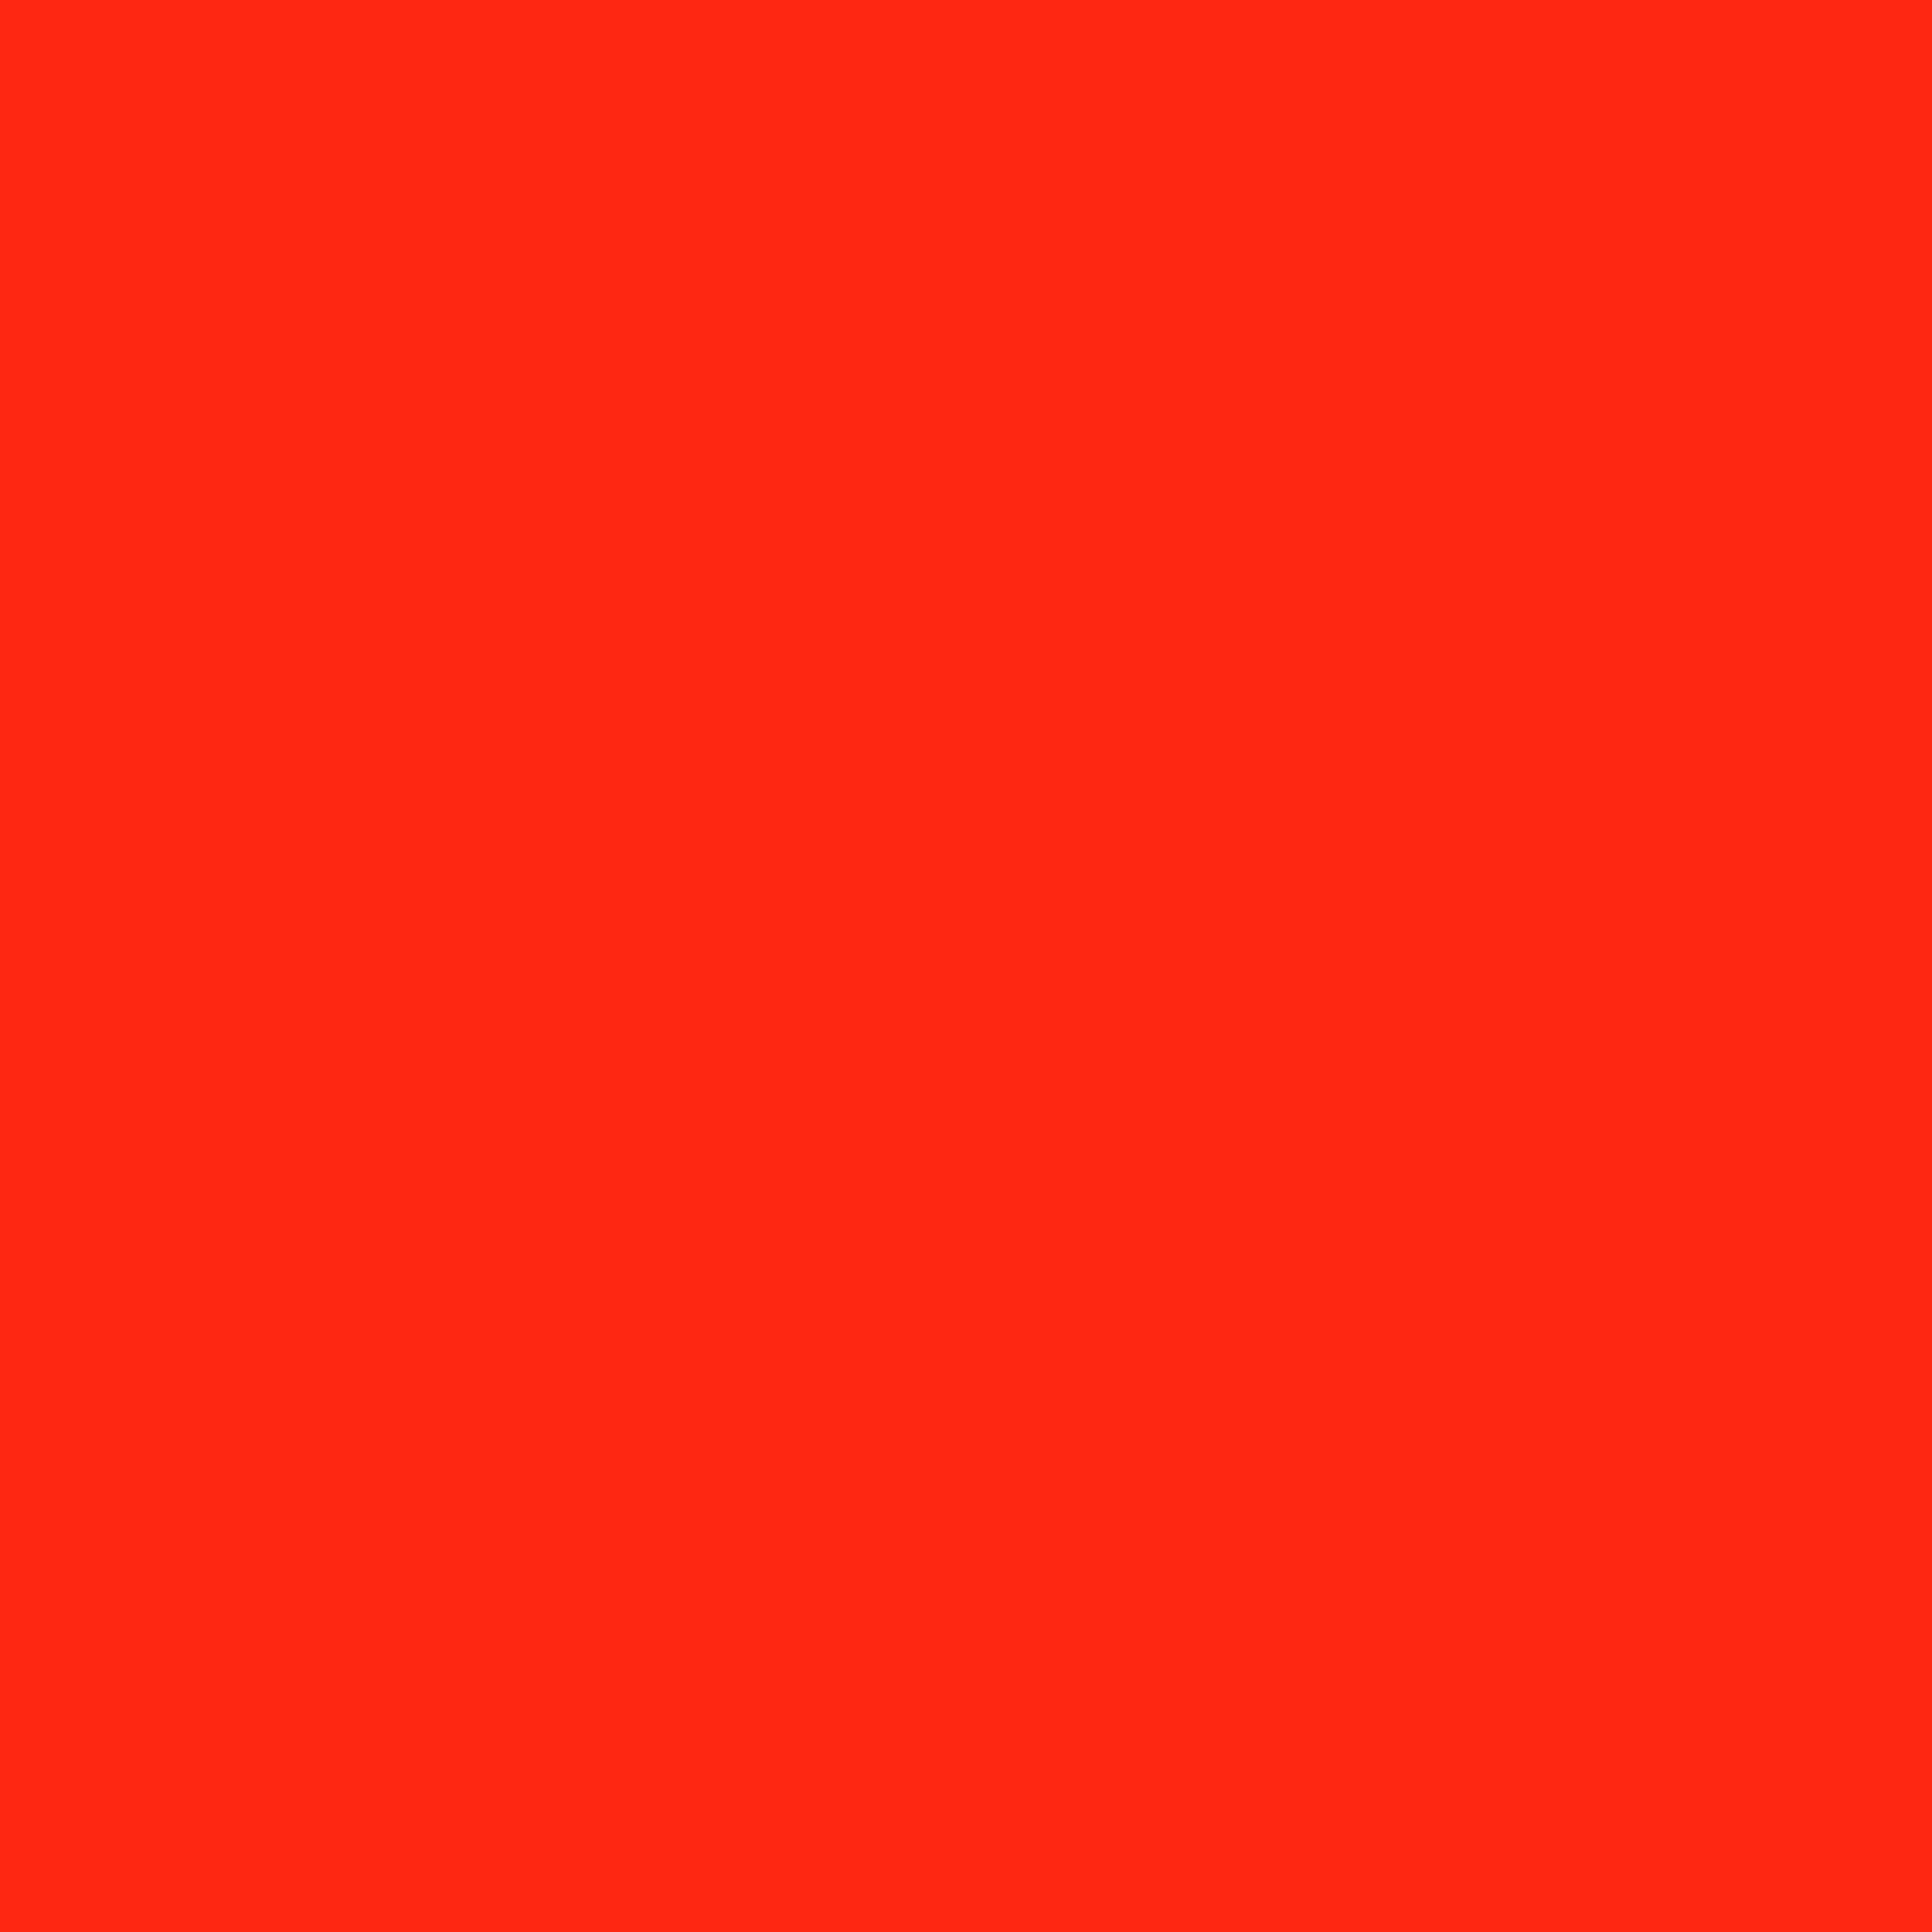 3600x3600 Red RYB Solid Color Background